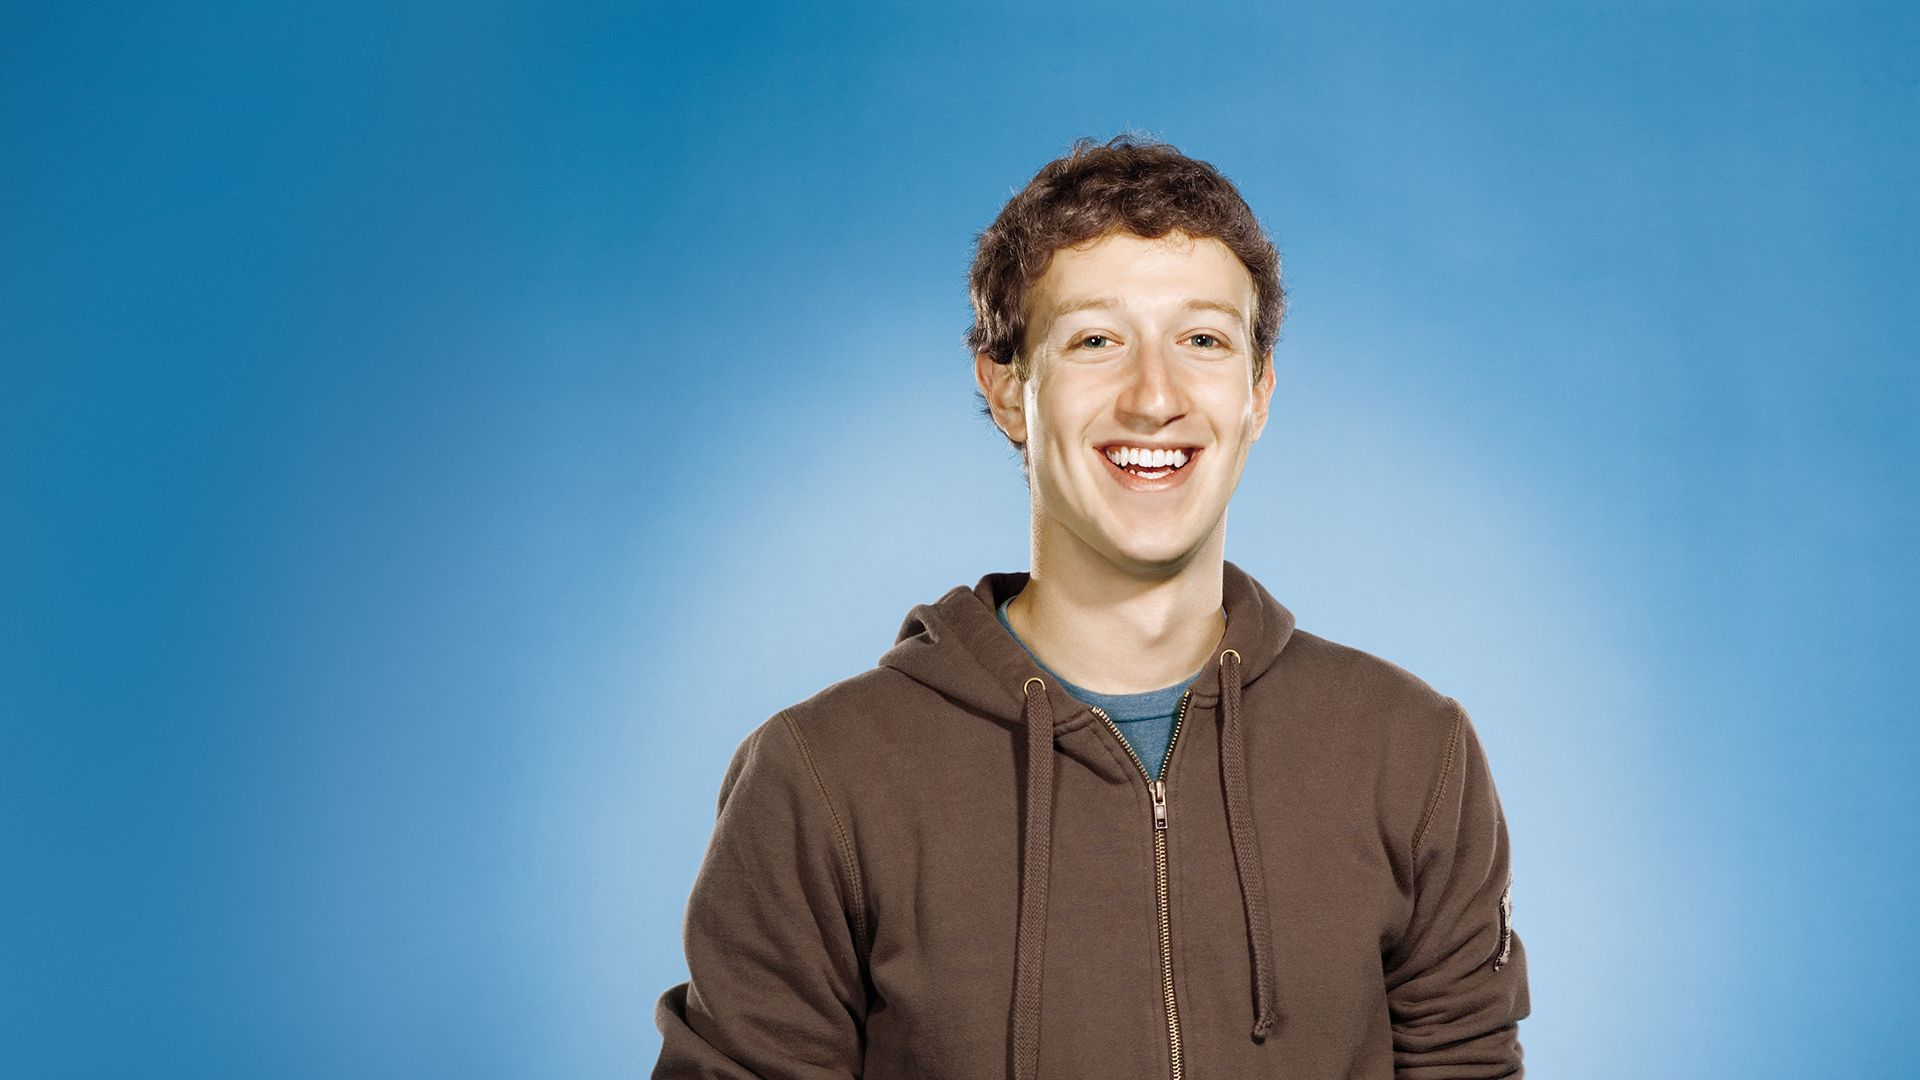 mark zuckerberg - top 5 wealthiest  in the world 2020